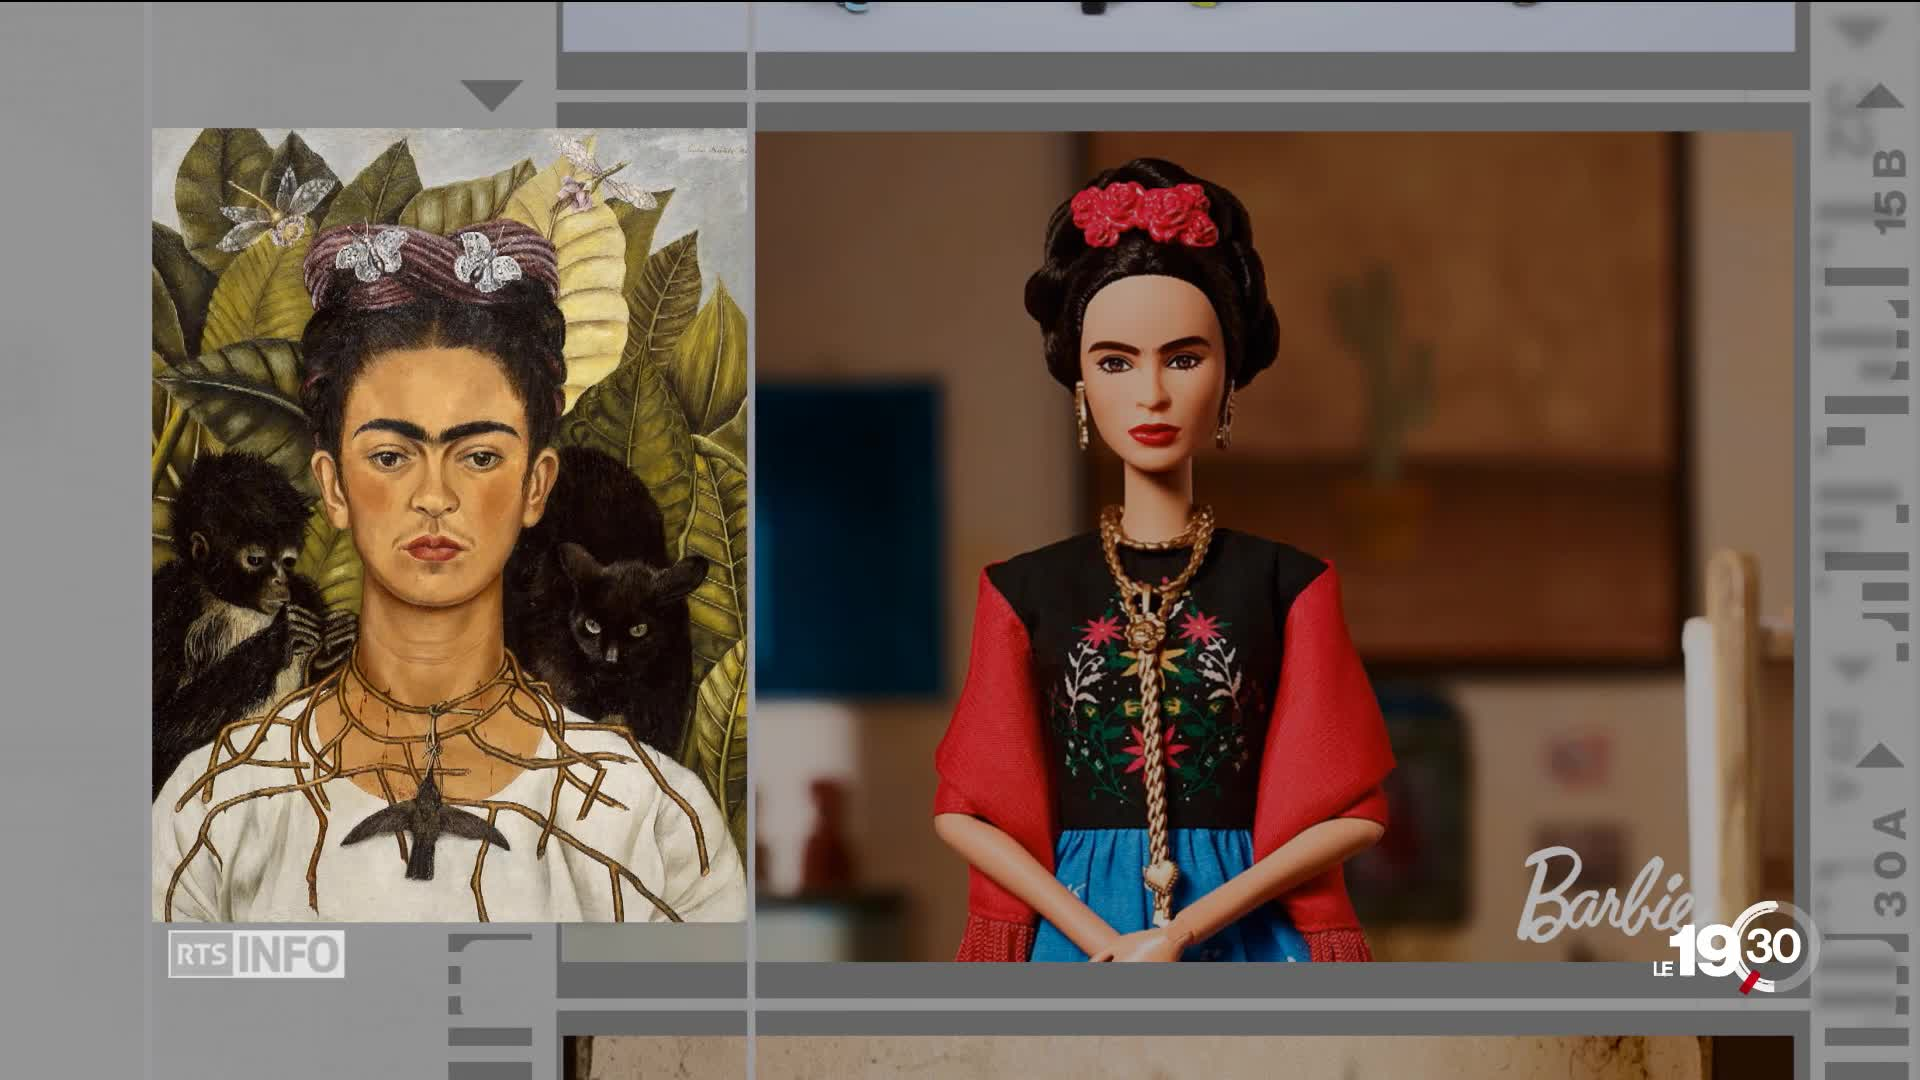 Chronique photo la barbie Frida Kahlo dans la tourmente